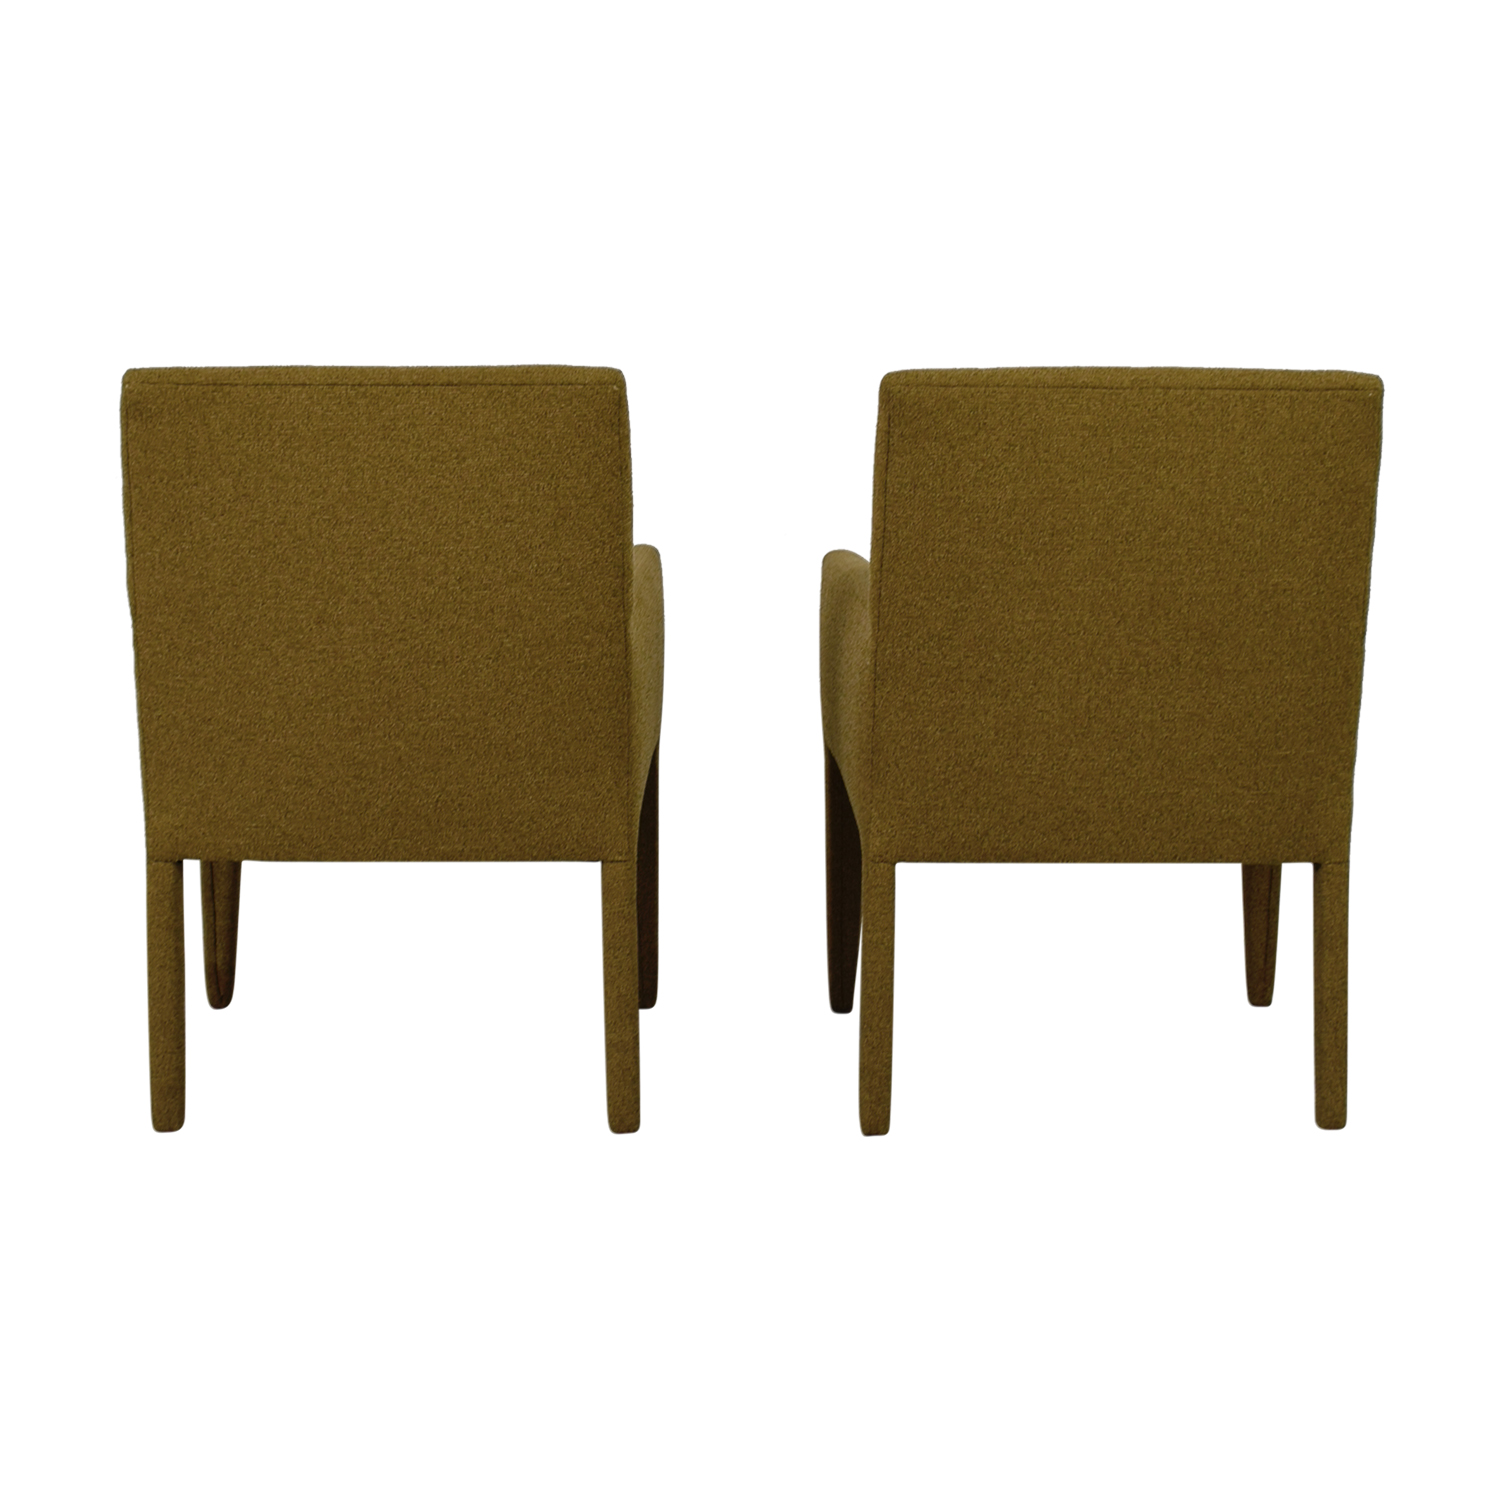 Macy's Macy's Olive Green Club Chairs used